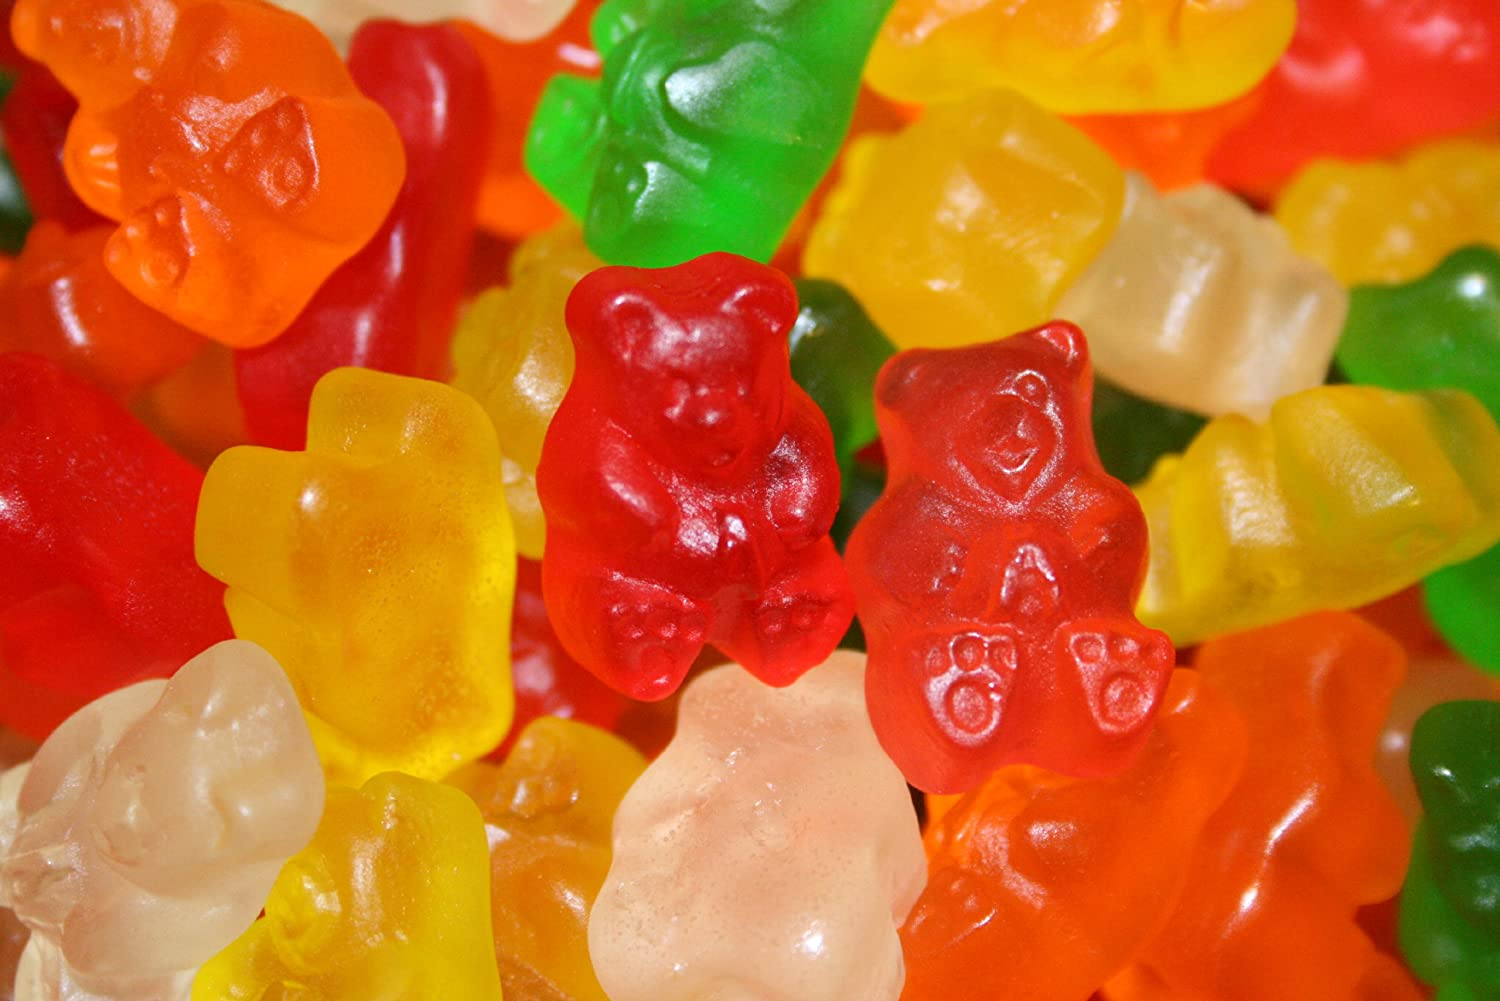 Haribo gummy bears are just one of many products that thomas - Amazon Com Sugar Free Gummy Bears 5lbs By Albanese Confectionery Gummy Candy Grocery Gourmet Food